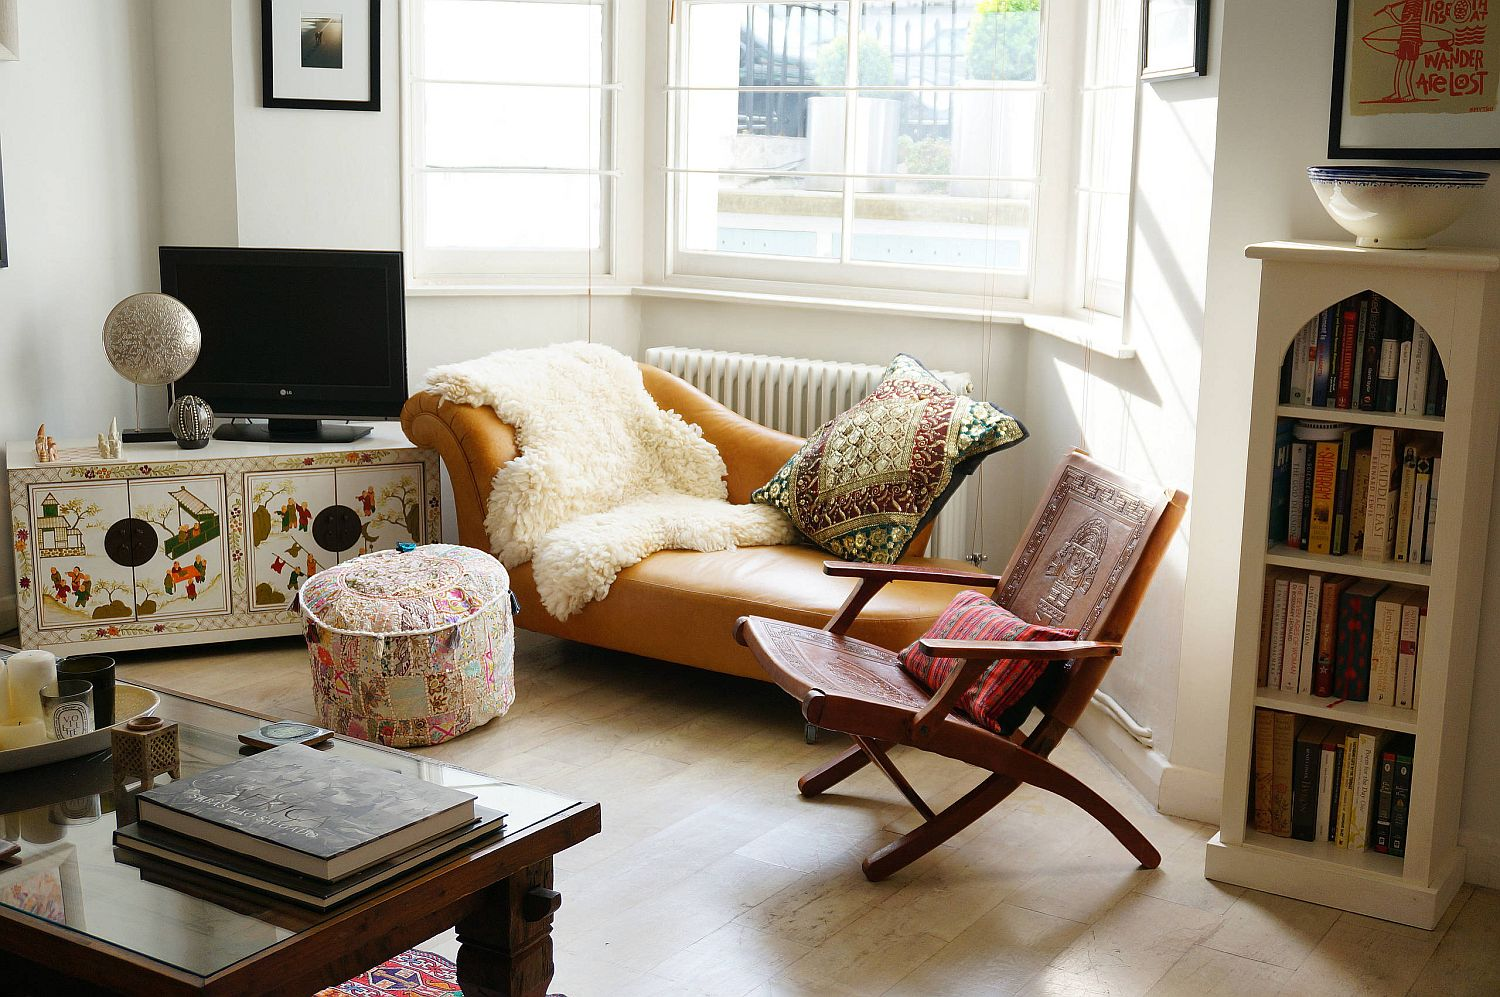 Classic chaise lounge, TV stand with pattern, ottoman and fluffy throw bring boho magic to this chic living space